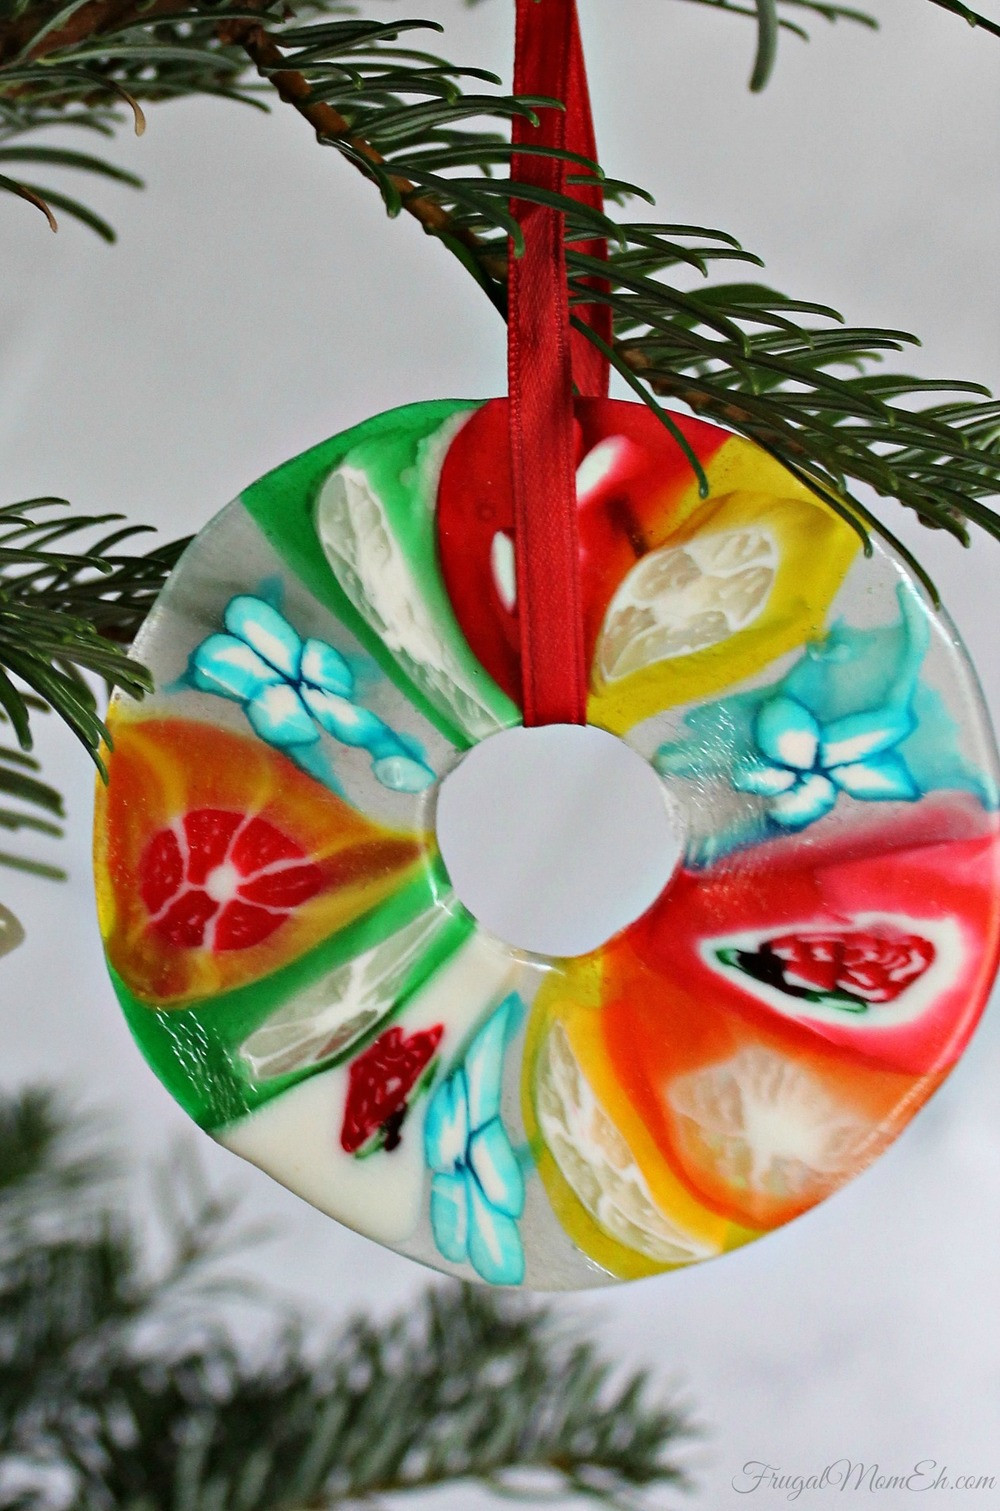 Christmas ornaments to Make Inspirational Melted Candy Christmas ornament Craft Of Delightful 43 Images Christmas ornaments to Make